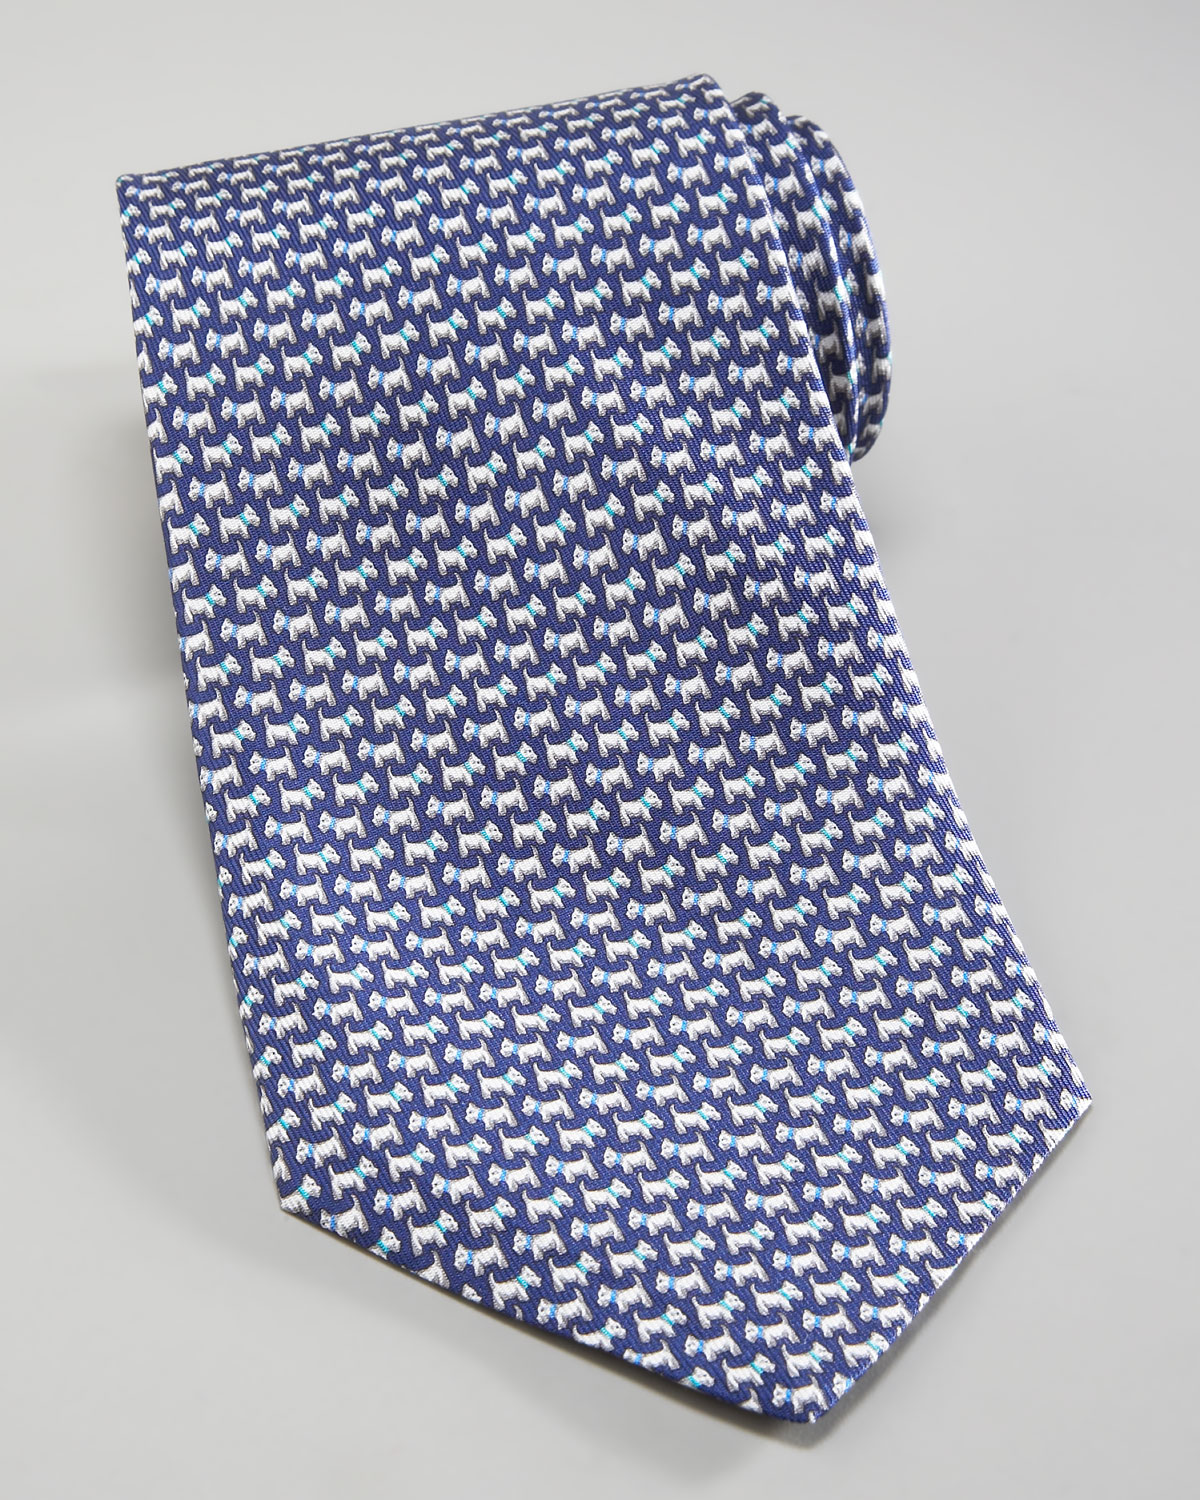 Ferragamo Scottie Dog Tie Navyaqua Blue in Blue for Men - Lyst